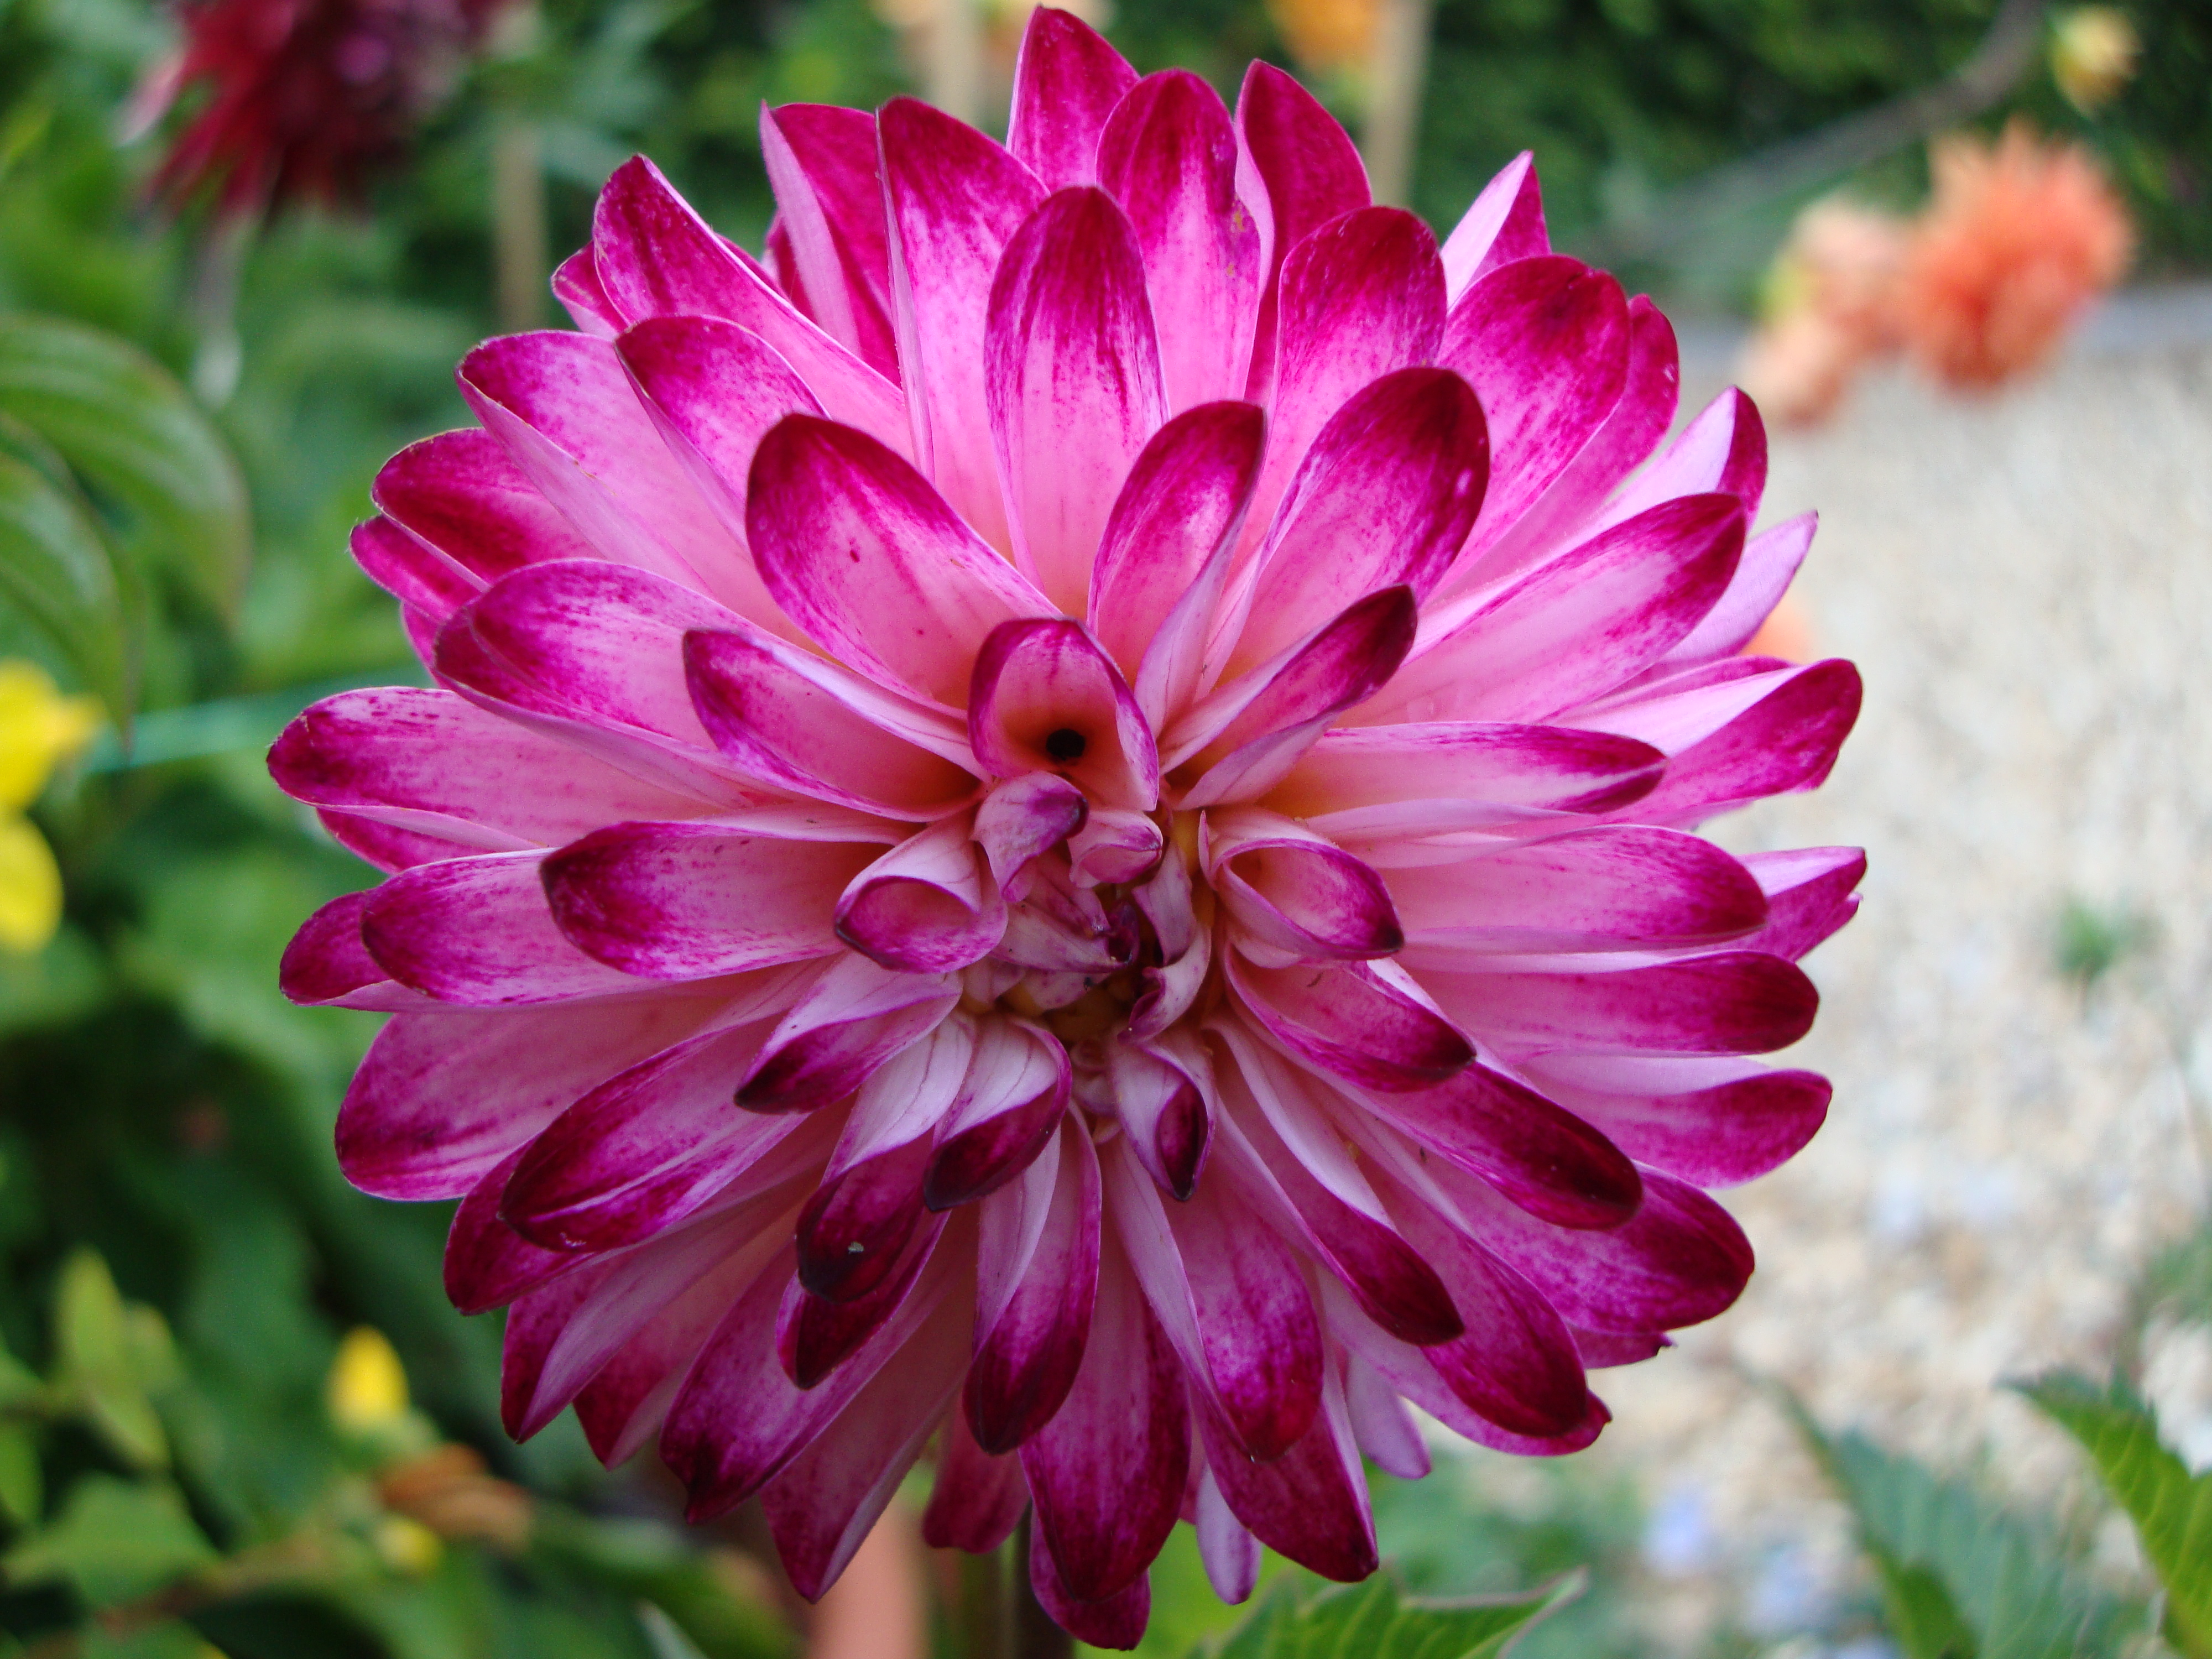 Dahlia two chances veg plot blog this izmirmasajfo